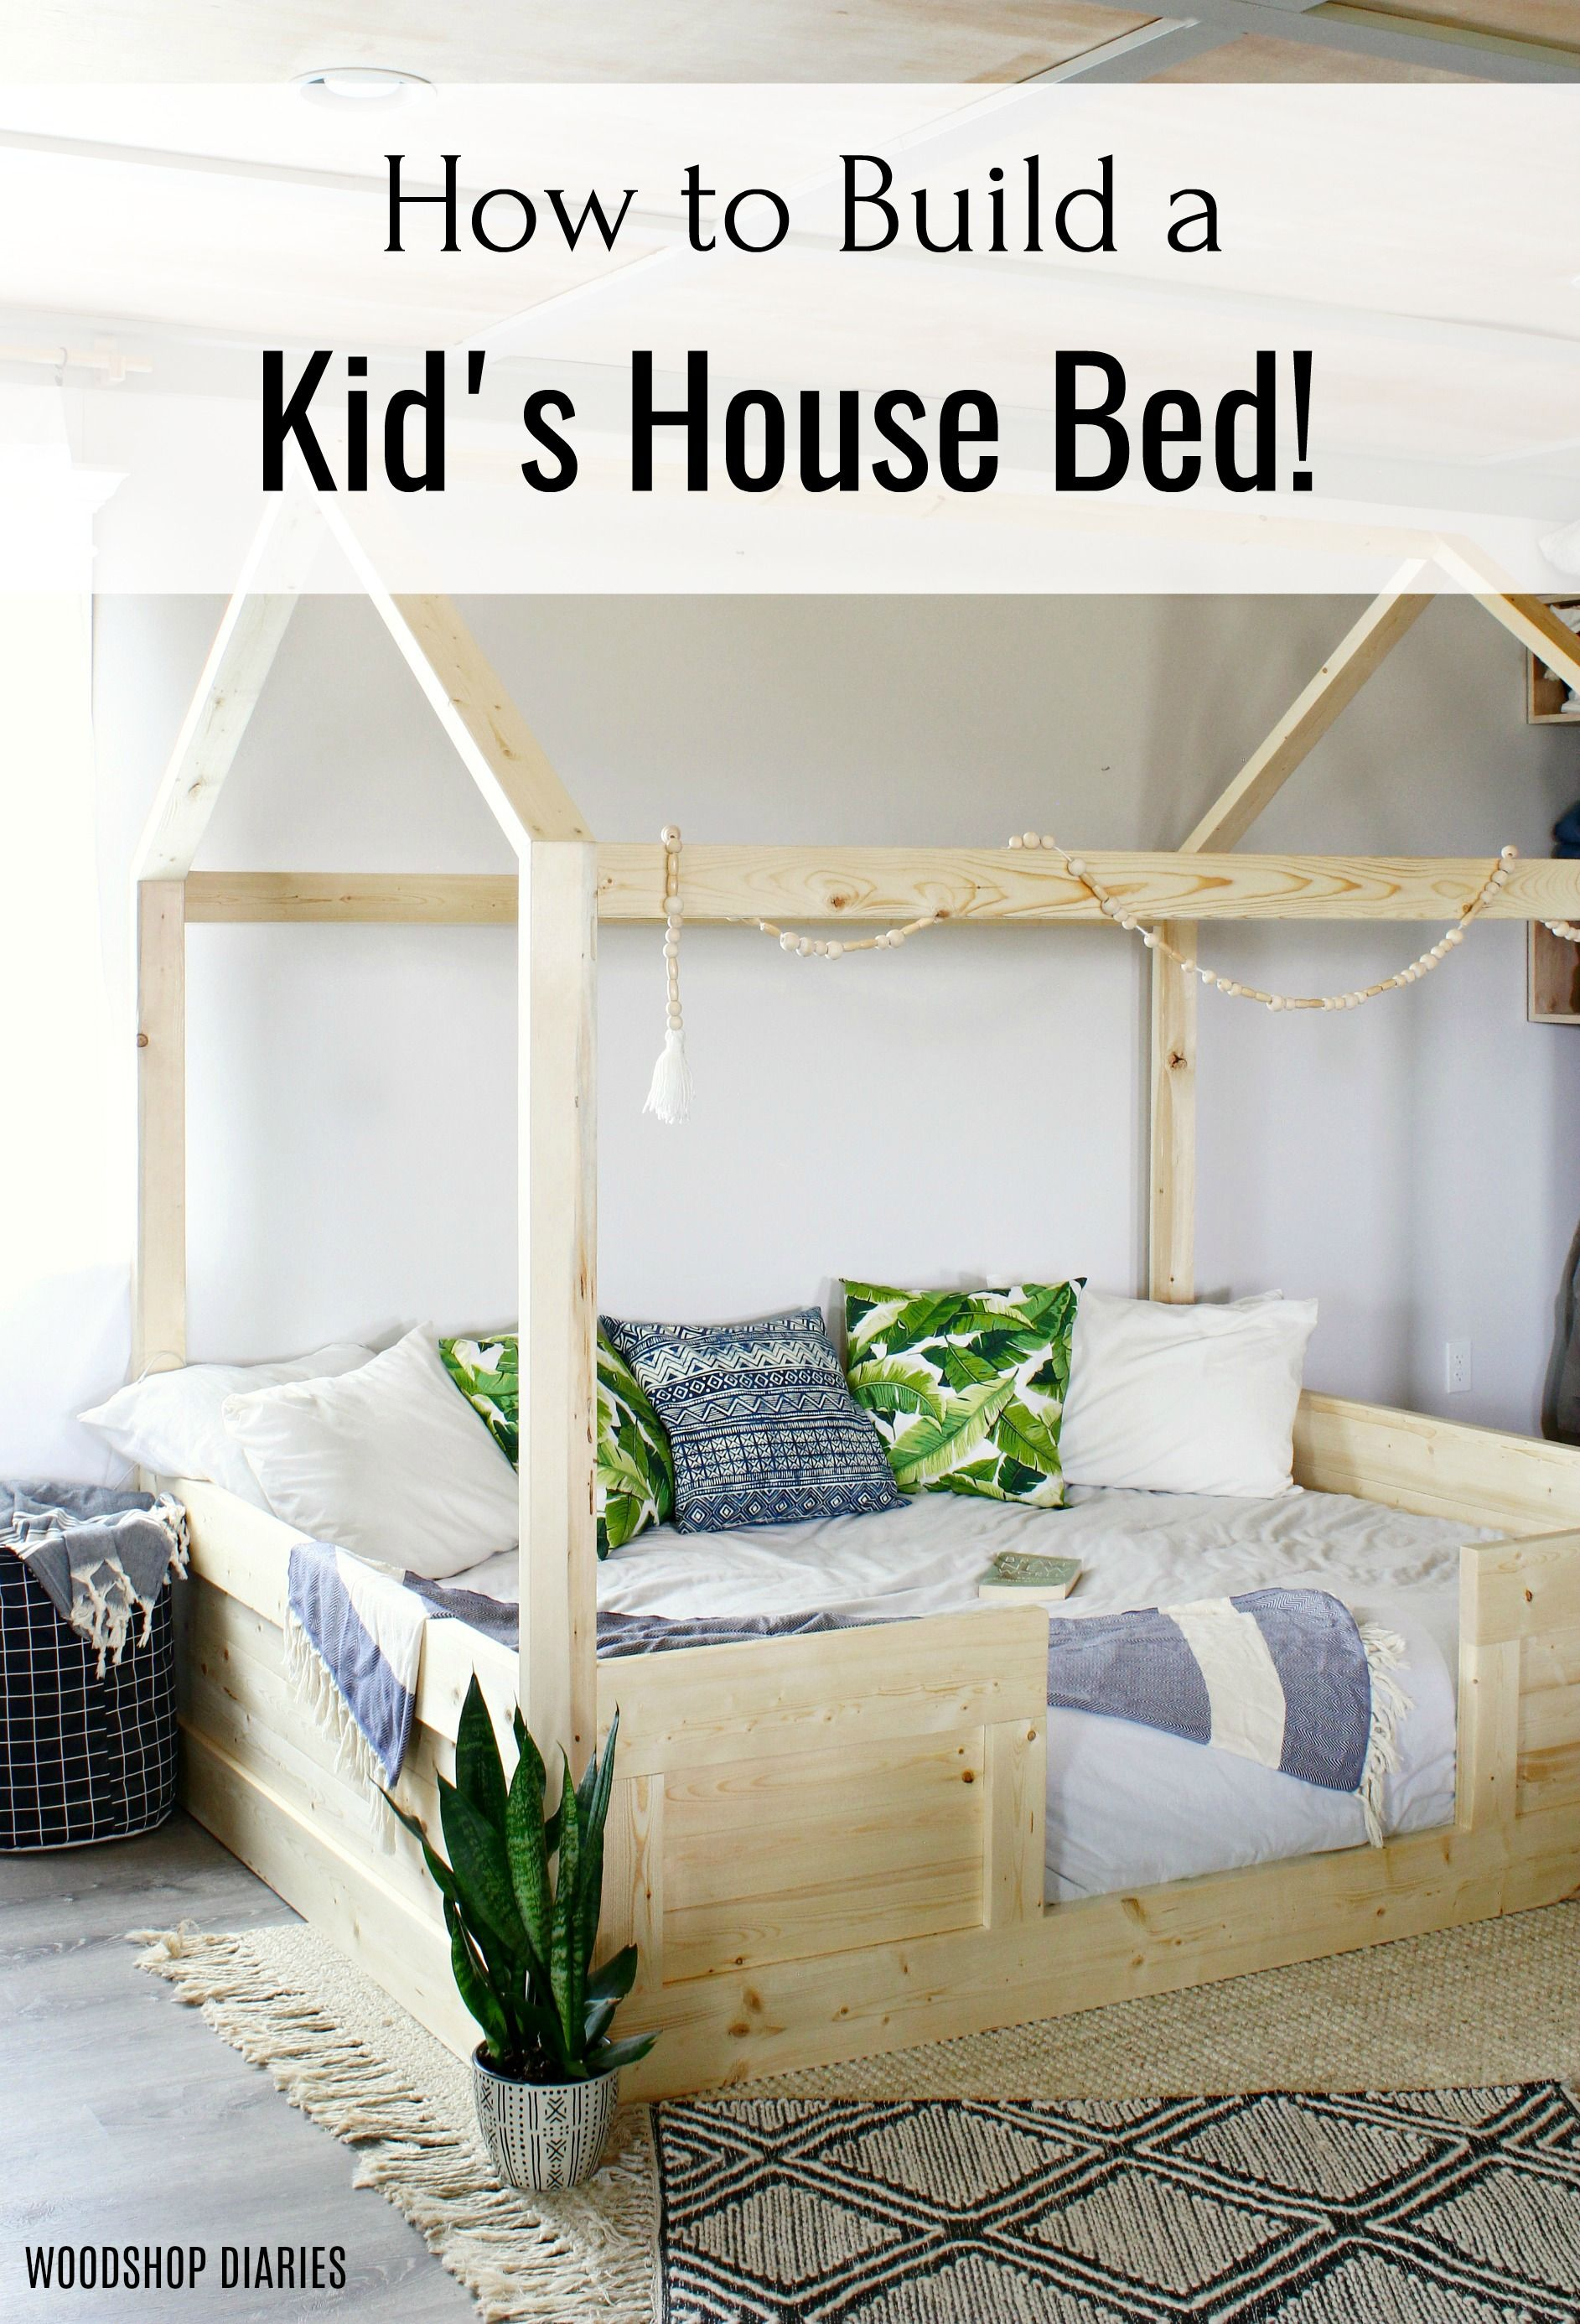 Diy Kids House Bed Twin Size Free Plans To Build Your Own In